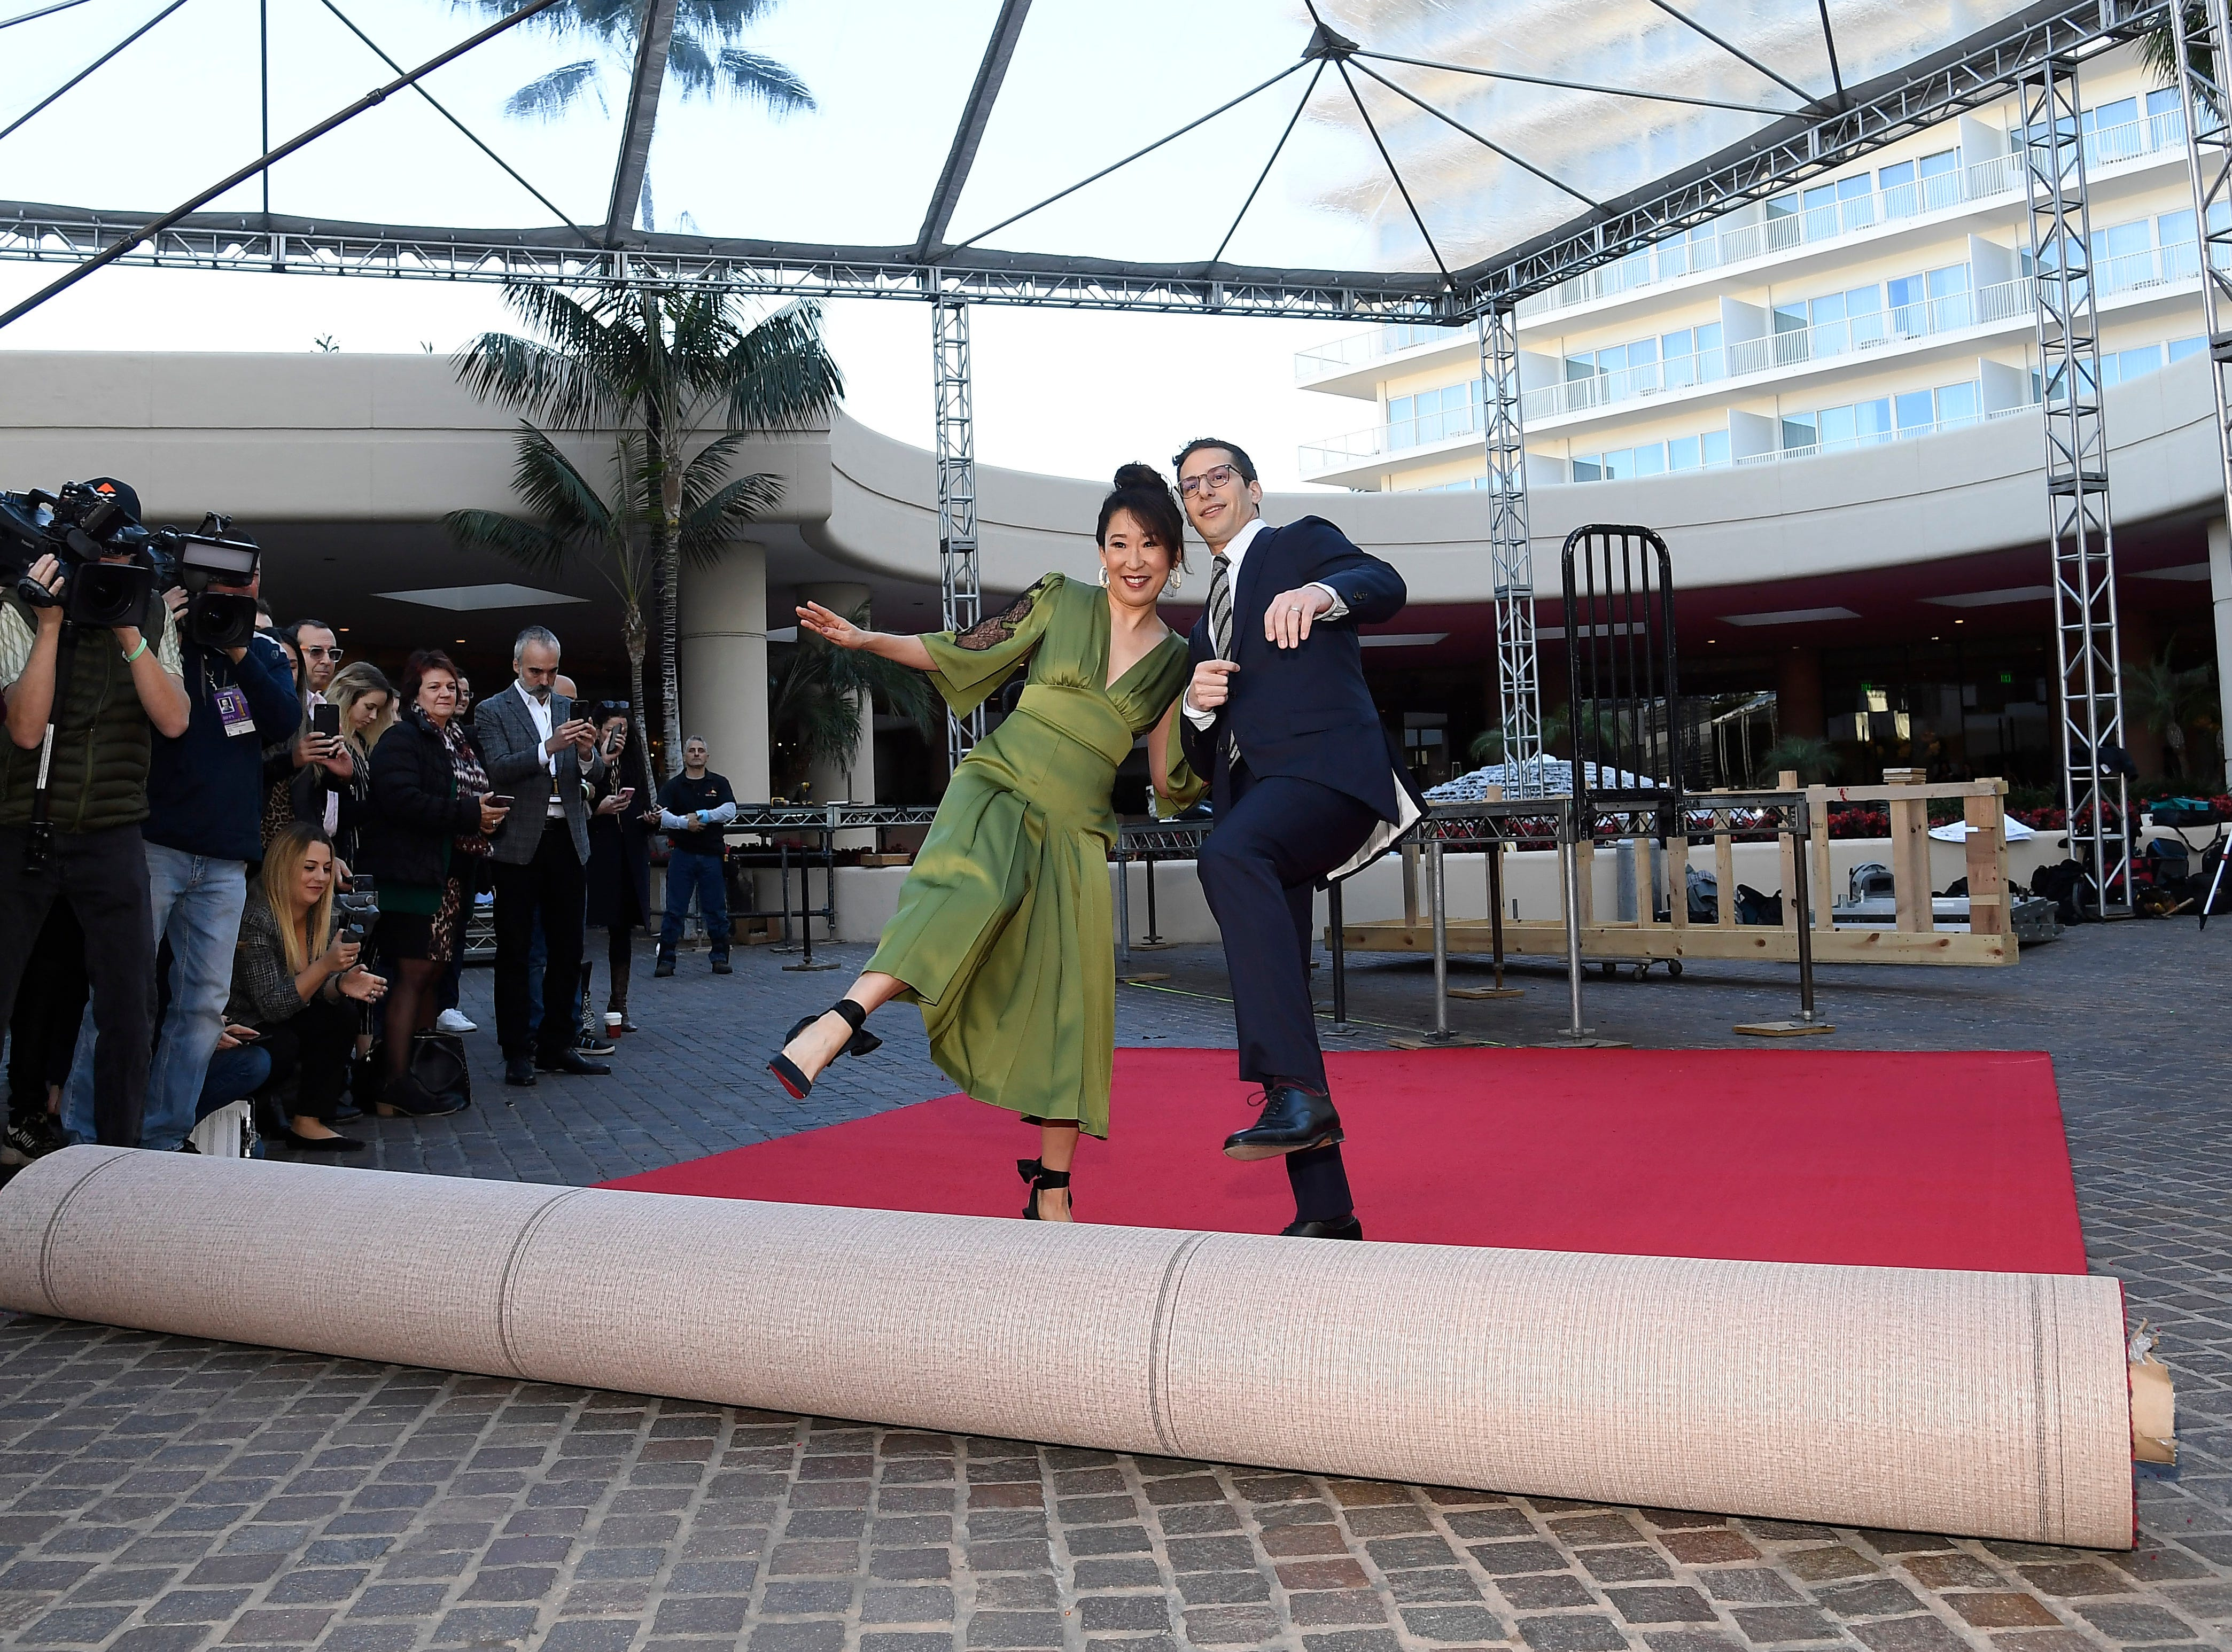 BEVERLY HILLS, CA - JANUARY 03: Sandra Oh and Andy Samberg, hosts of the 76th Annual Golden Globe Awards, rollout the red carpet during a preview day at The Beverly Hilton Hotel on January 3, 2019 in Beverly Hills, California. (Photo by Kevork Djansezian/Getty Images) ORG XMIT: 775269696 ORIG FILE ID: 1076675166